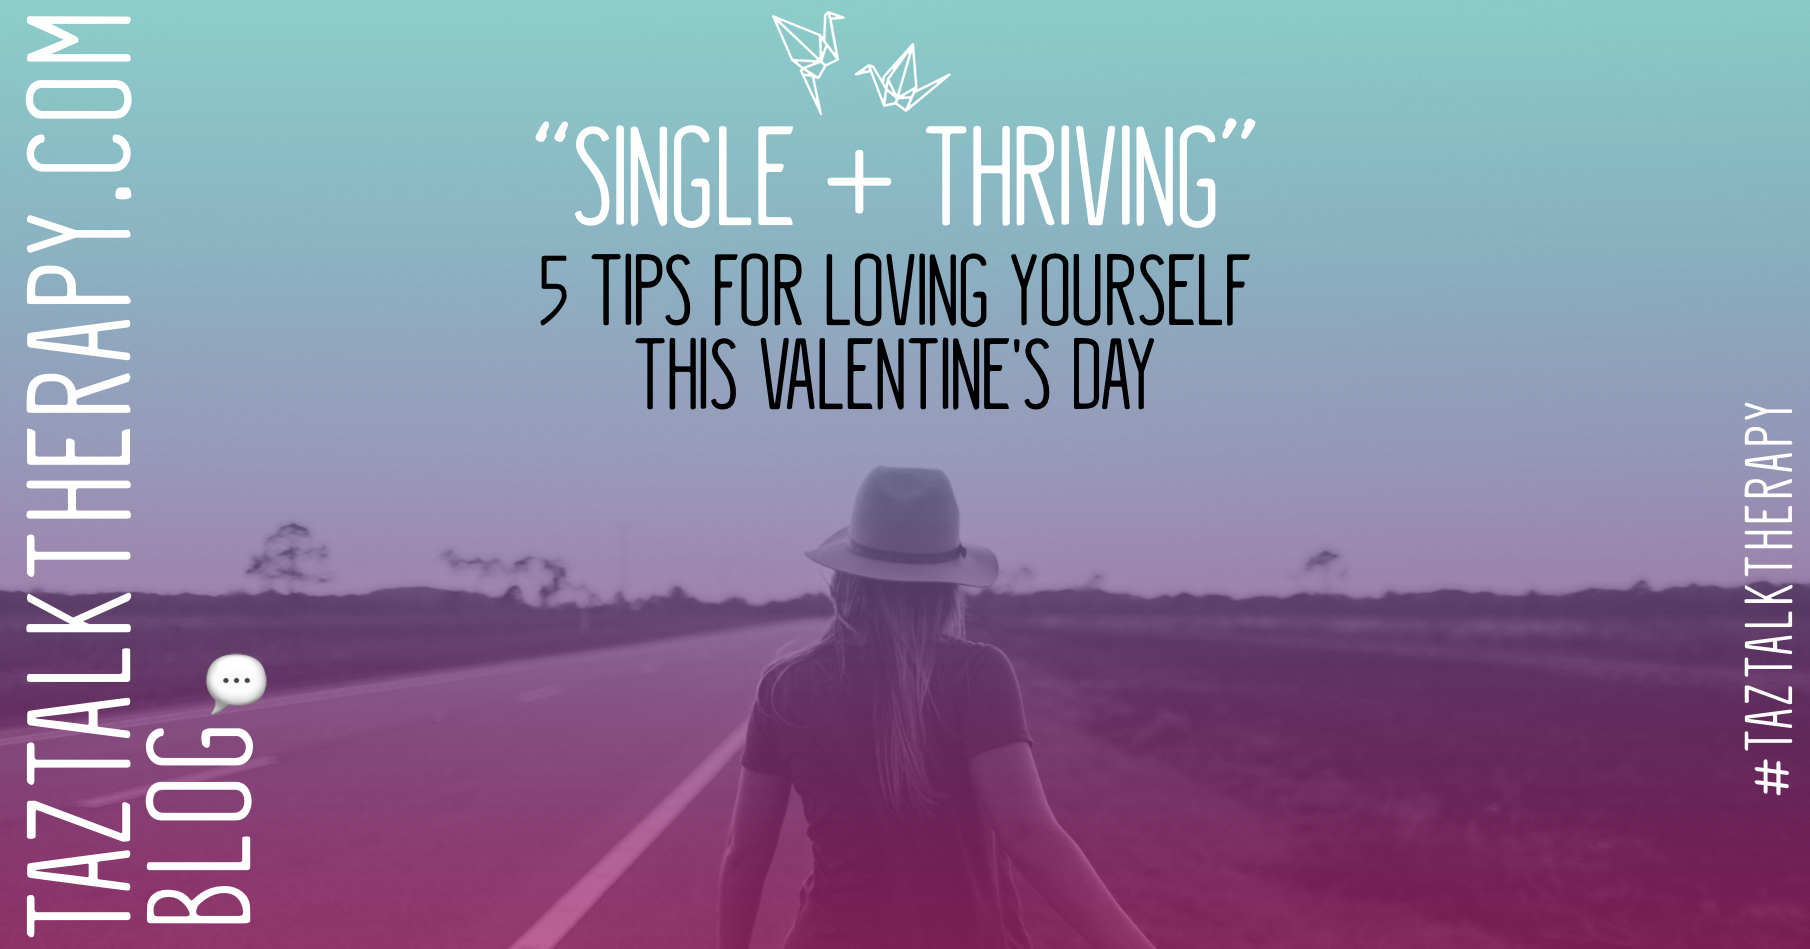 Single + Thriving: 5 Tips for Loving Yourself This Valentine's Day